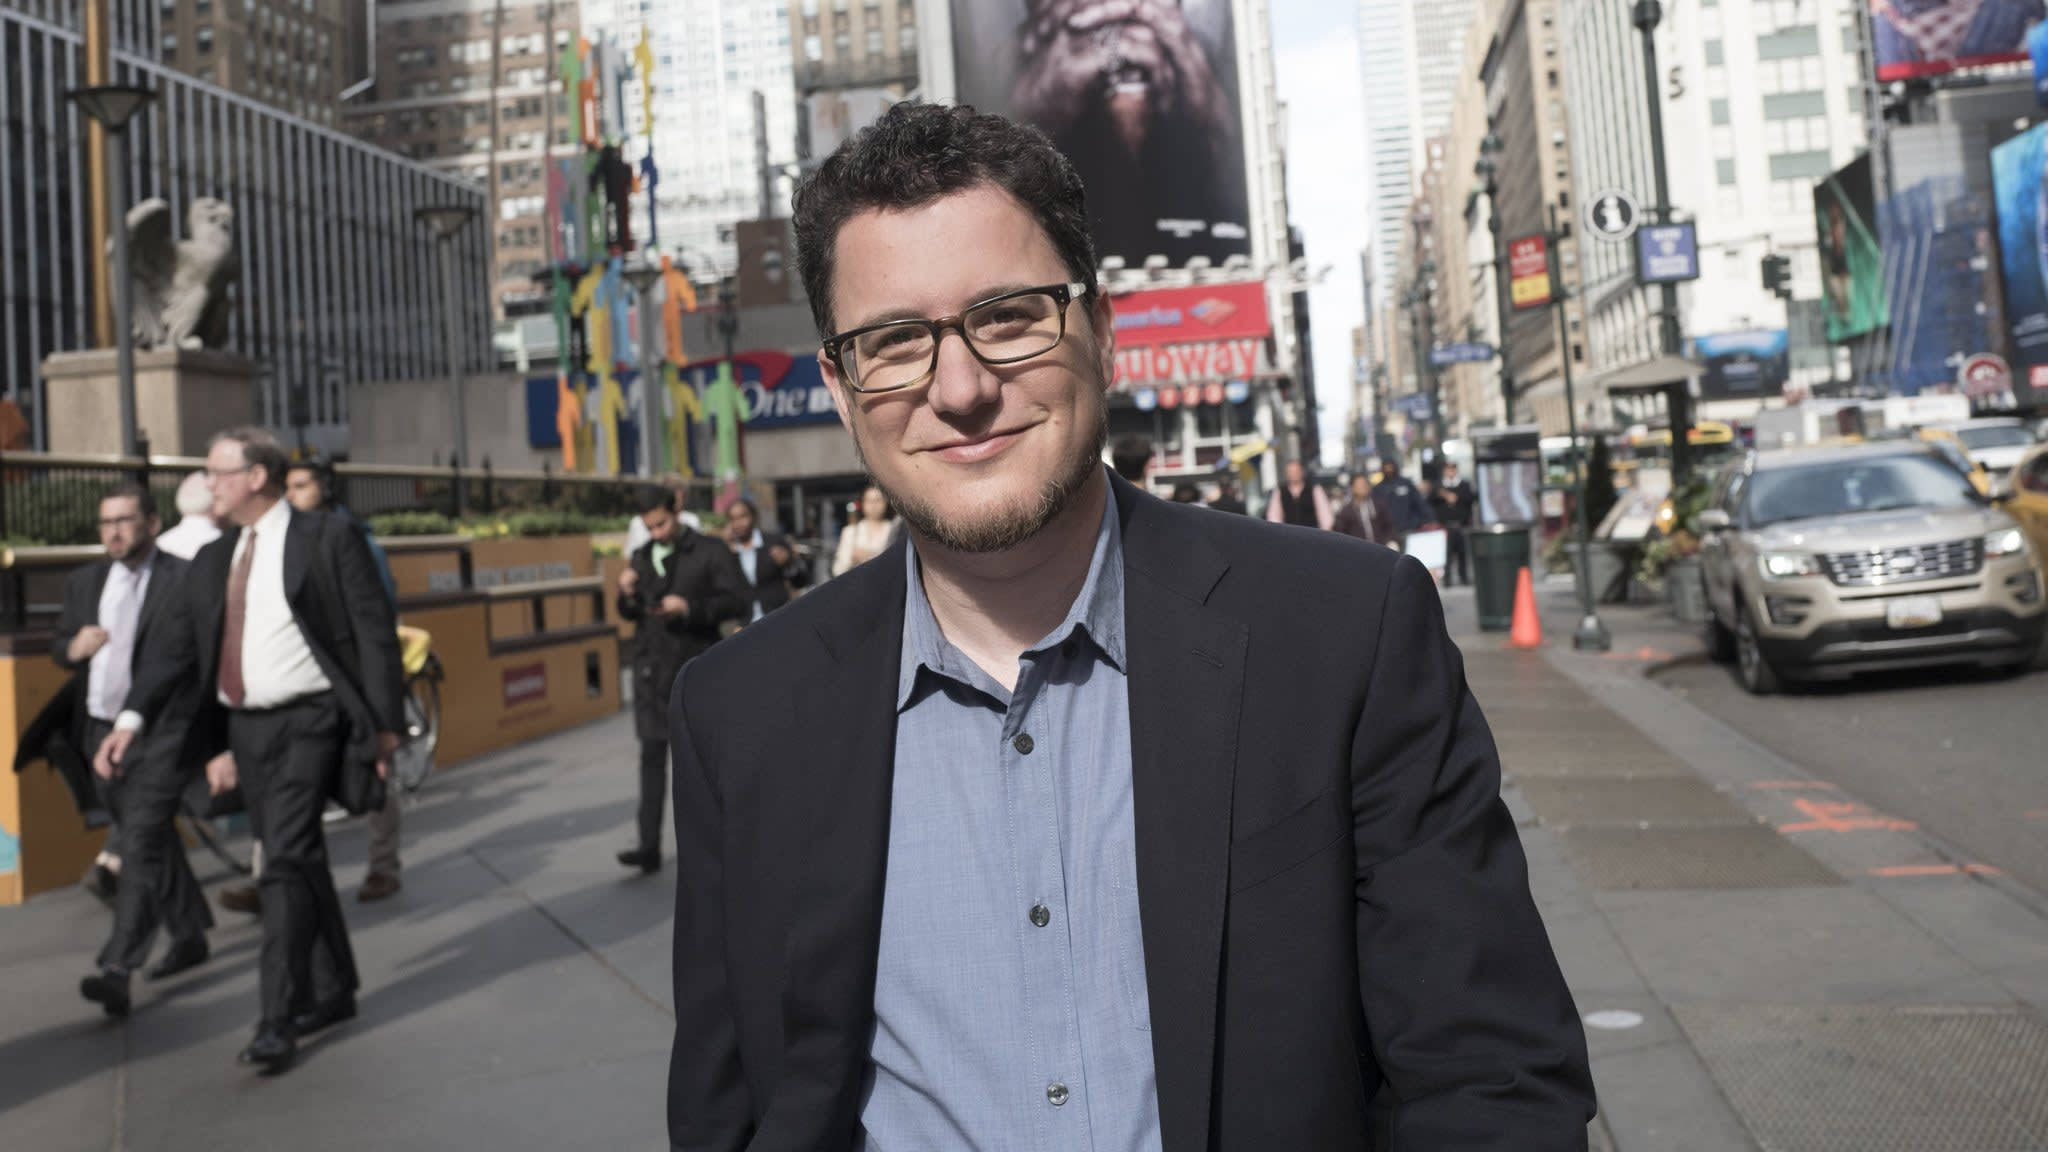 Meet Eric Ries — reluctant start-up guru who sparked a movement | Financial Times